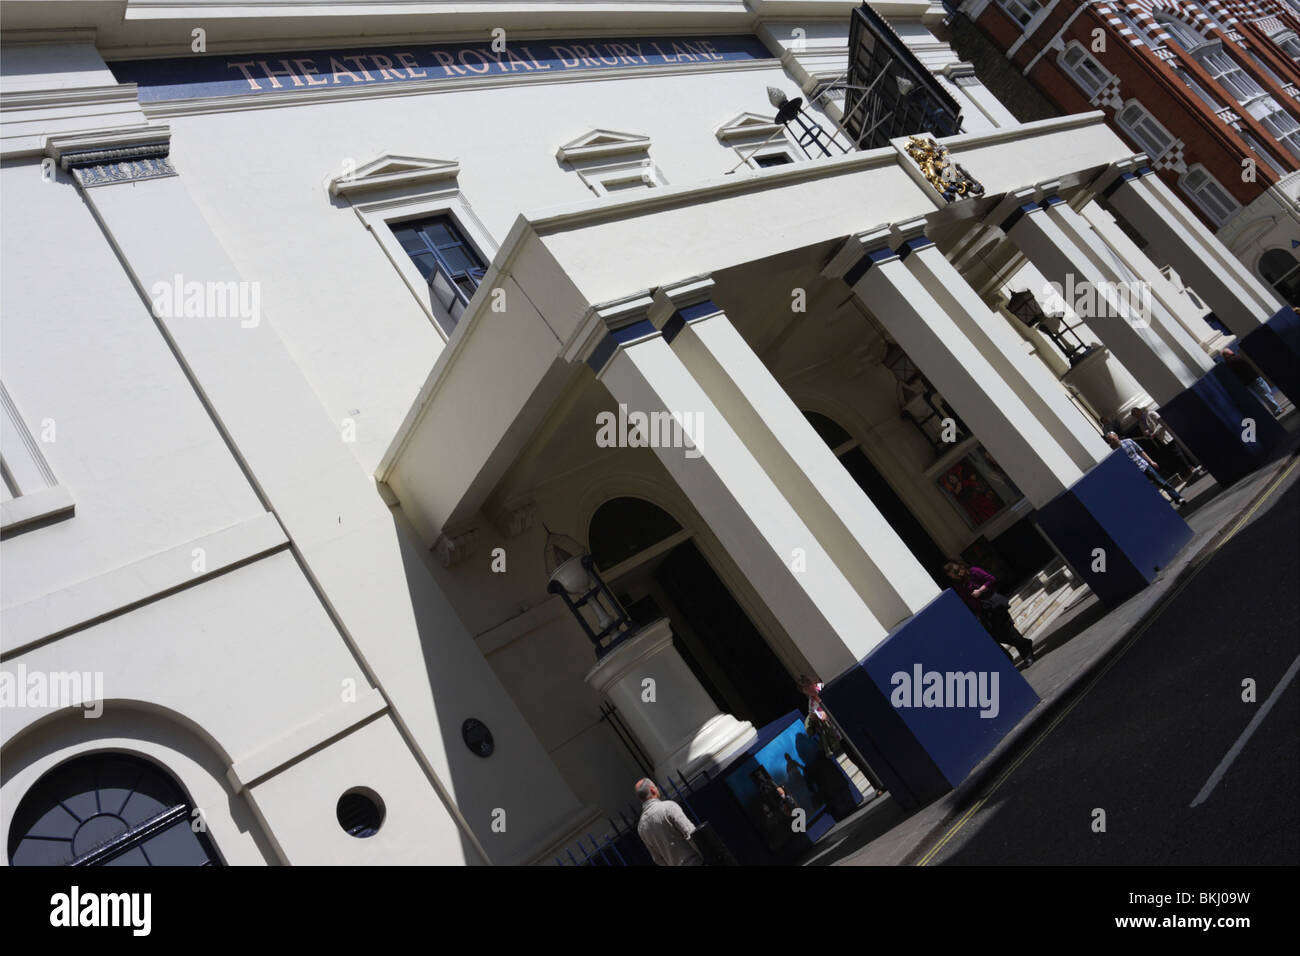 Extreme angled aspect to the main entrance to the Theatre Royal Drury Lane in London`s Covent Garden. - Stock Image